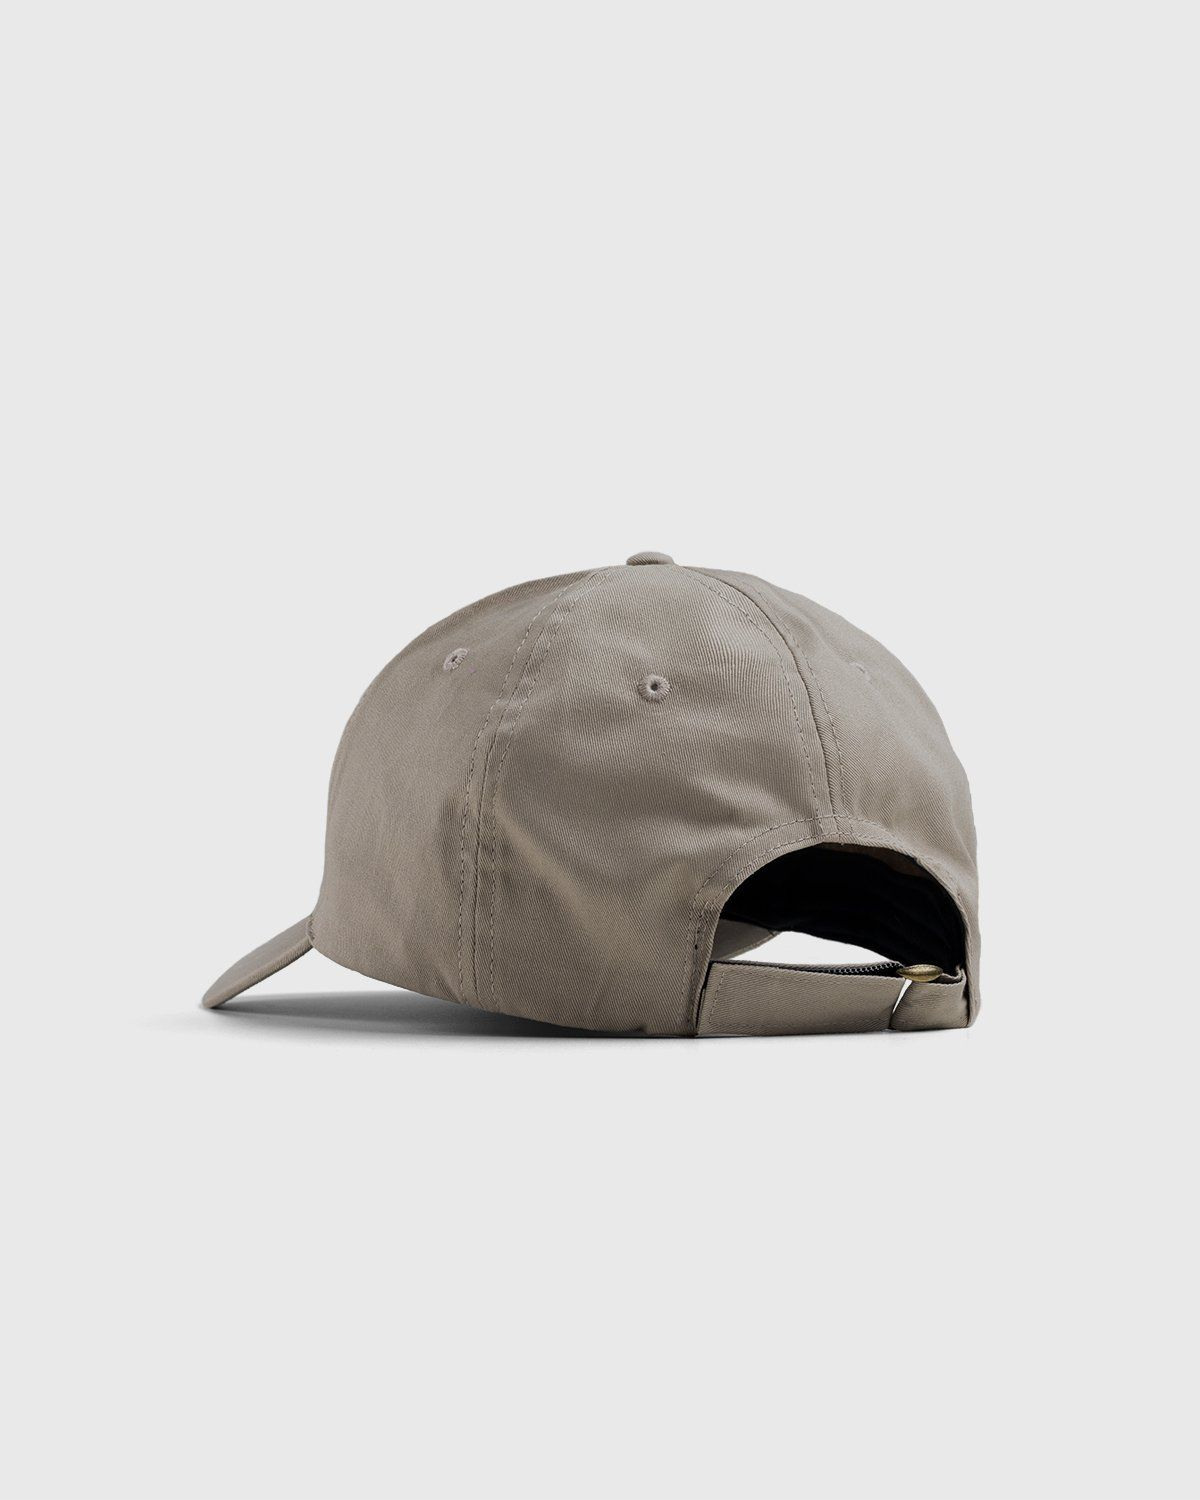 Noon Goons – Boys and Girls Hat Stone - Image 3